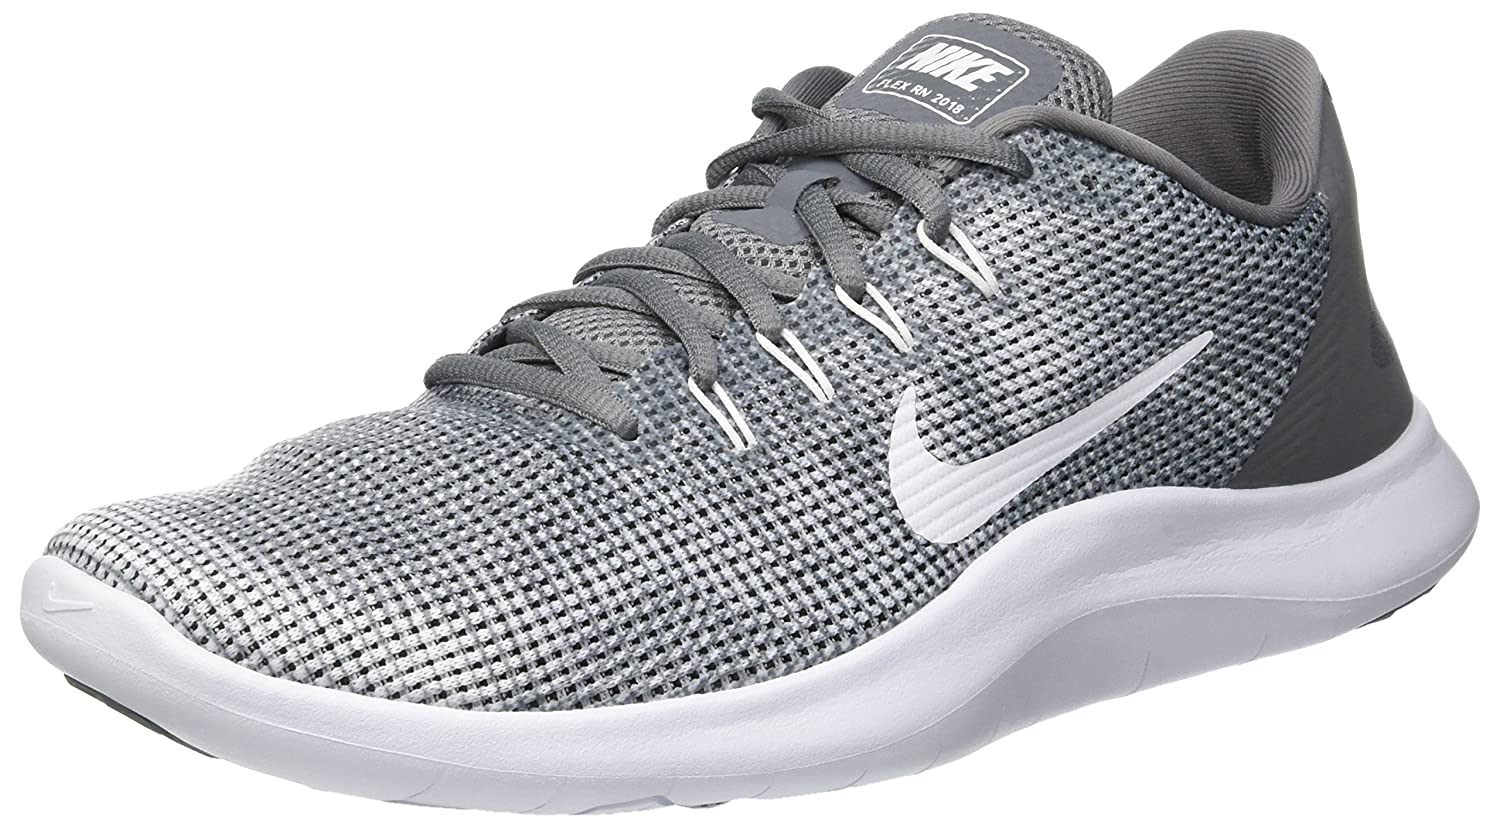 Cool Grey White Nike Men's Flex 2018 Rn Running shoes